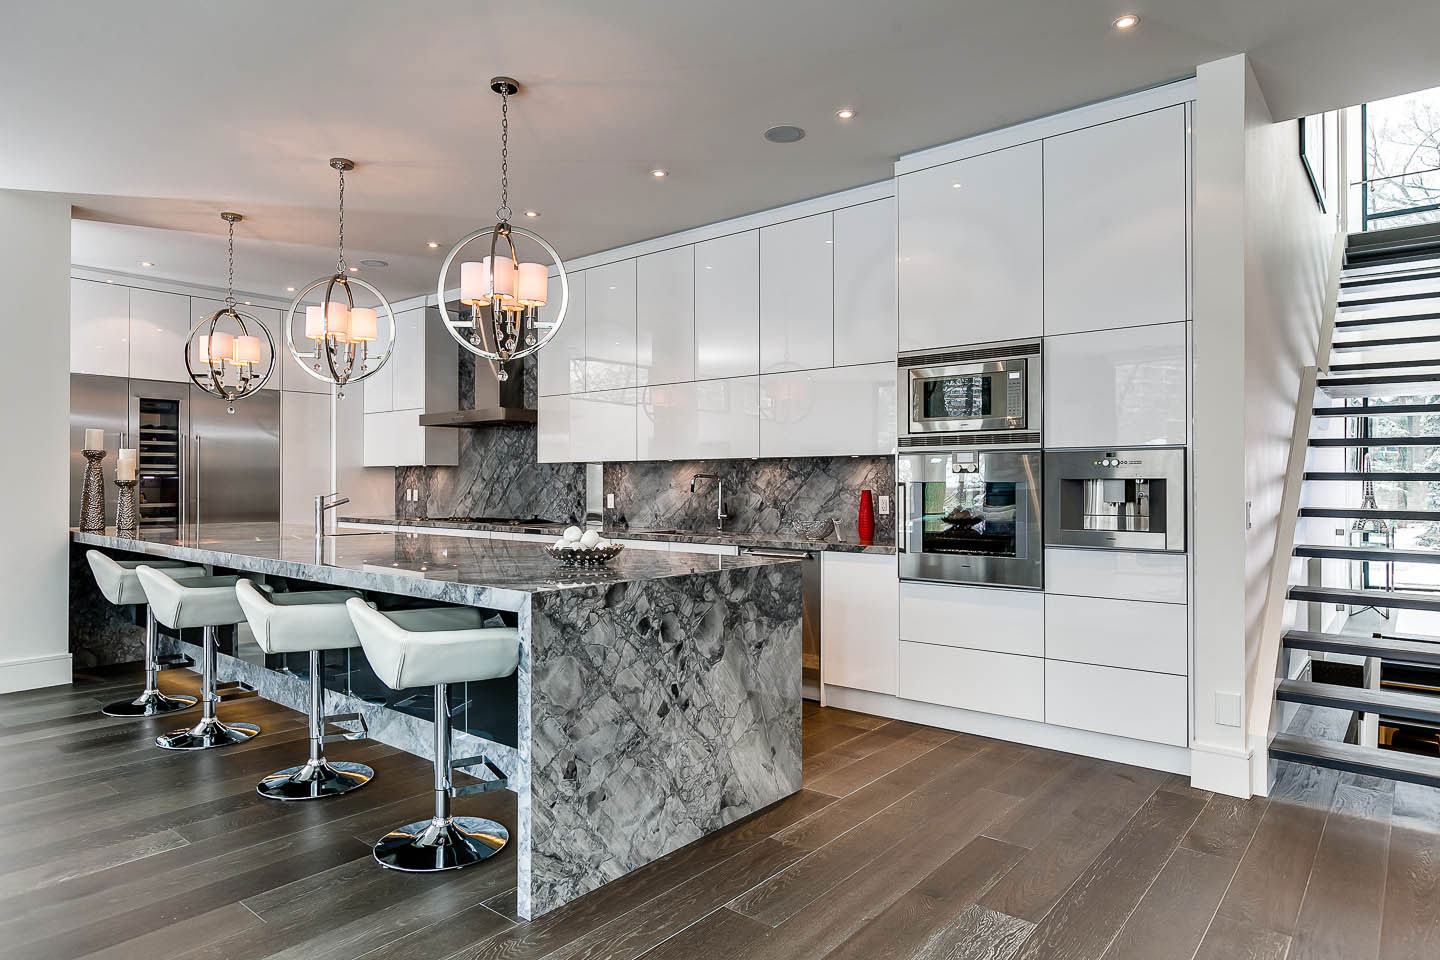 Marble Island Breakfast Bar Kitchen Lighting Contemporary House In Toronto Canada